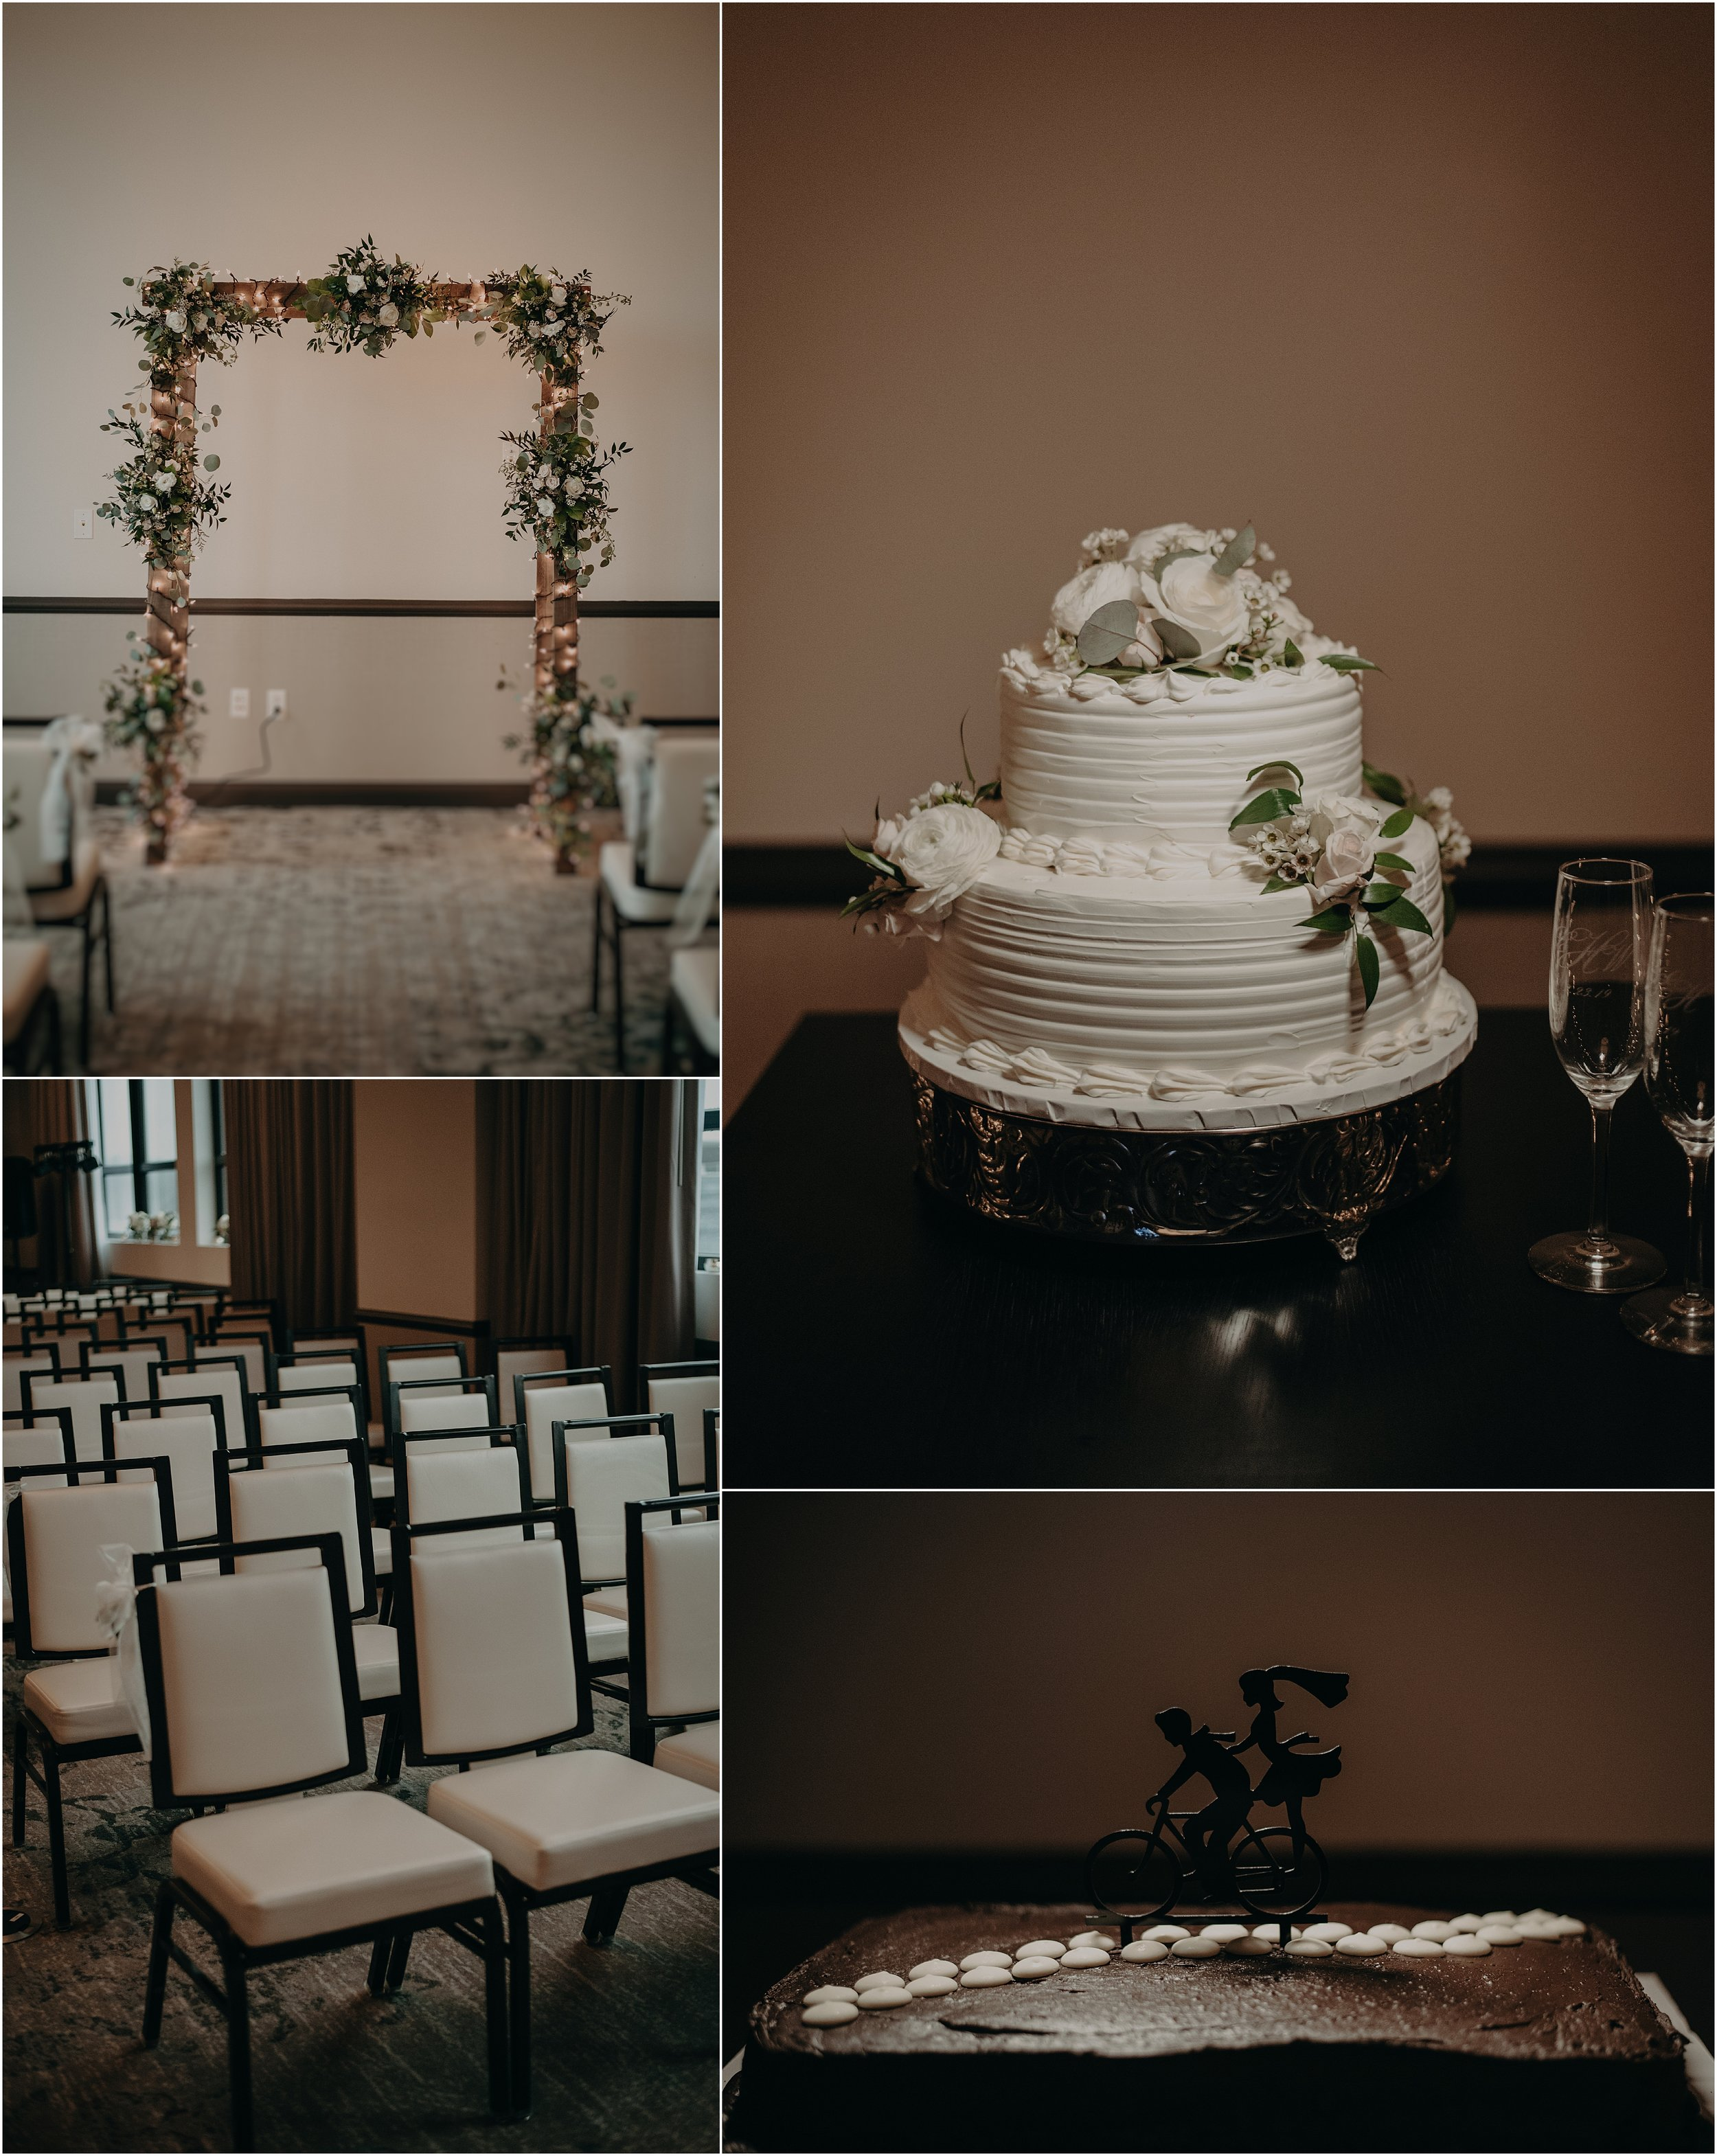 The Edwin Hotel's ballroom center for weddings and a classic two-tier wedding cake